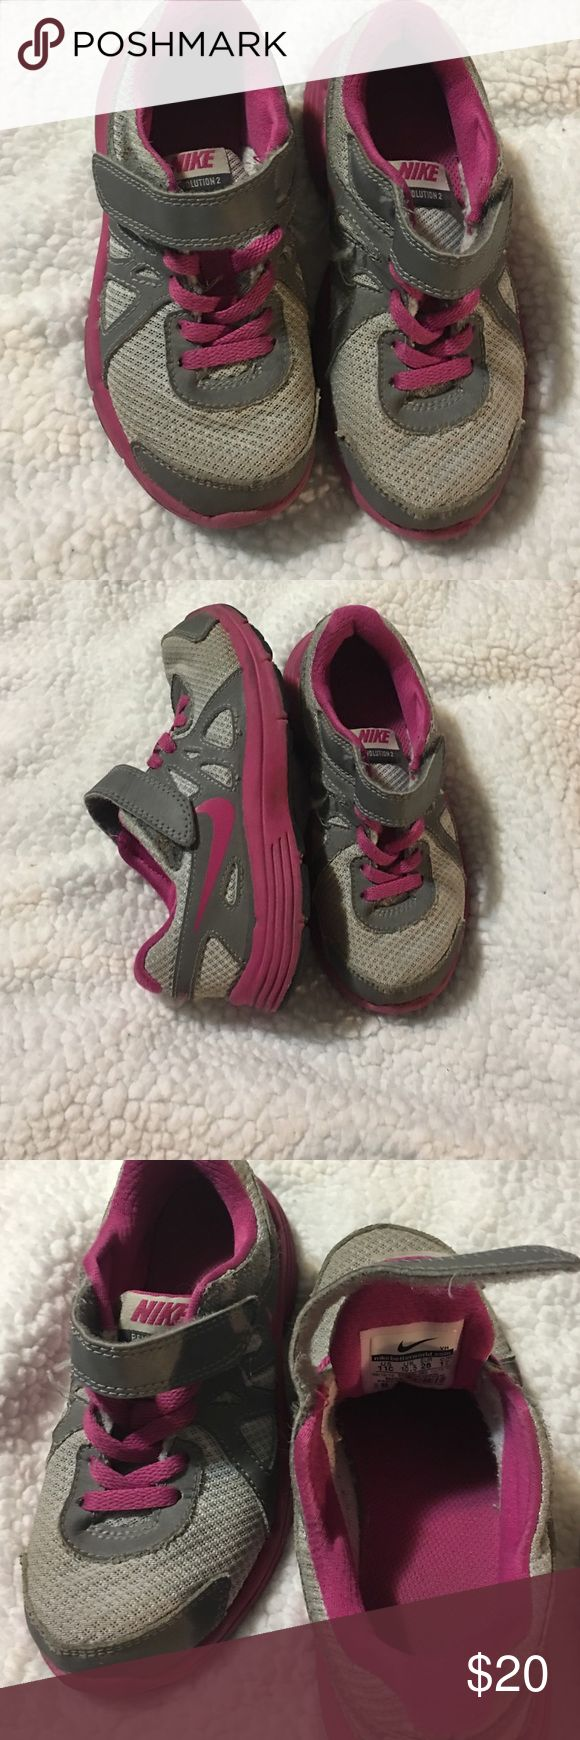 NIKE GIRLS TENNIS SHOES Good condition size 11C Nike Shoes Sneakers